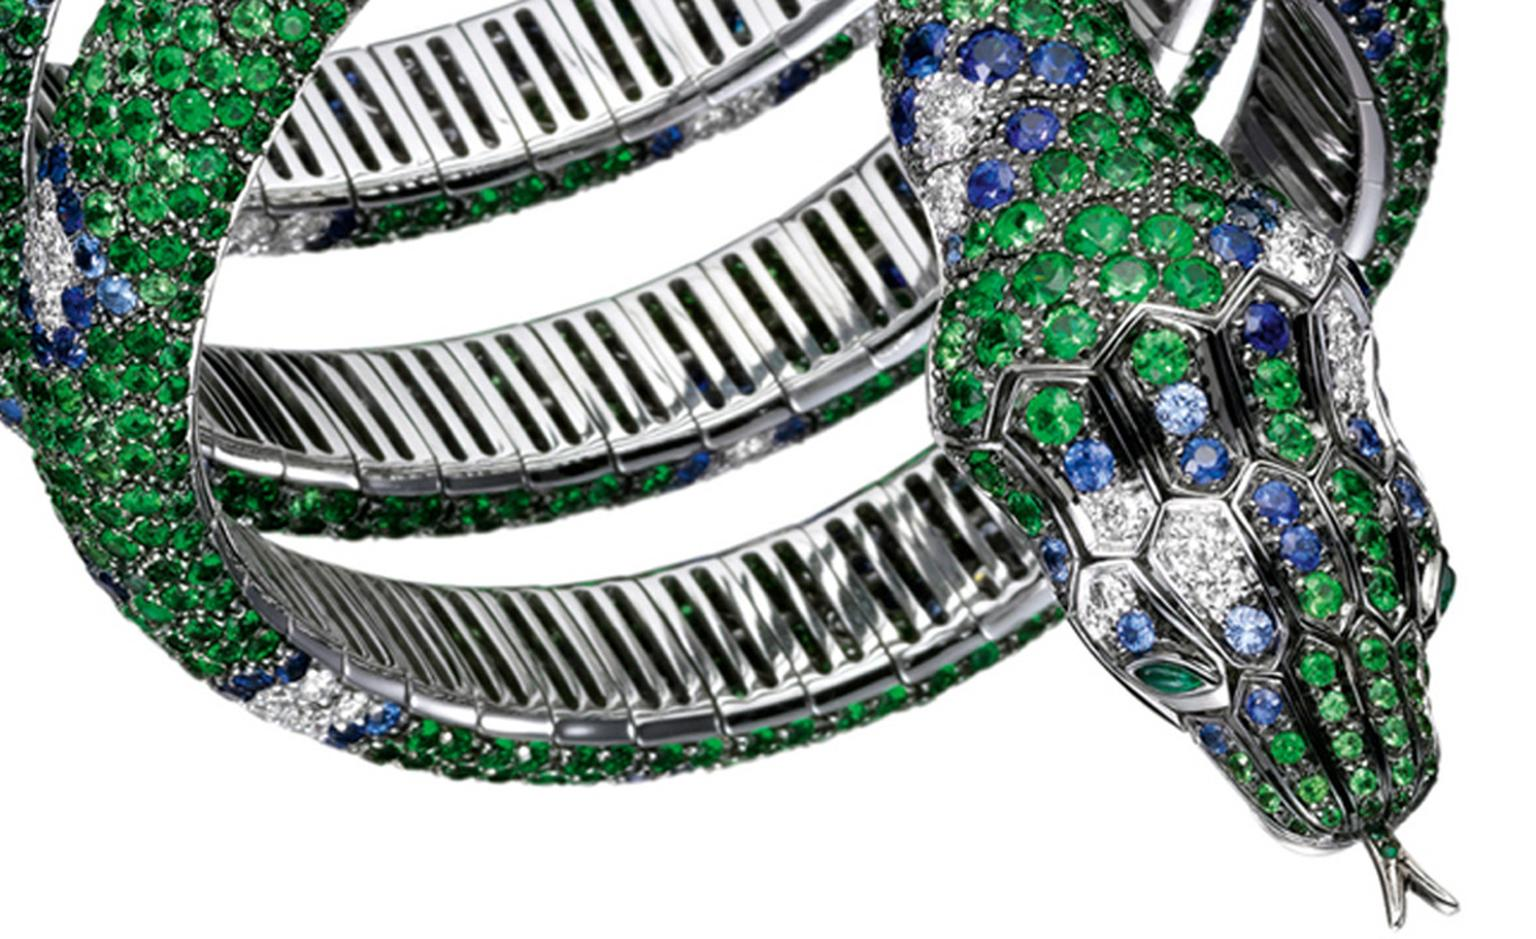 Detail of the Boucheron Python Bracelet with 700 tsavorites, 440 sapphires and 120 diamonds in white gold. Price: £166,000